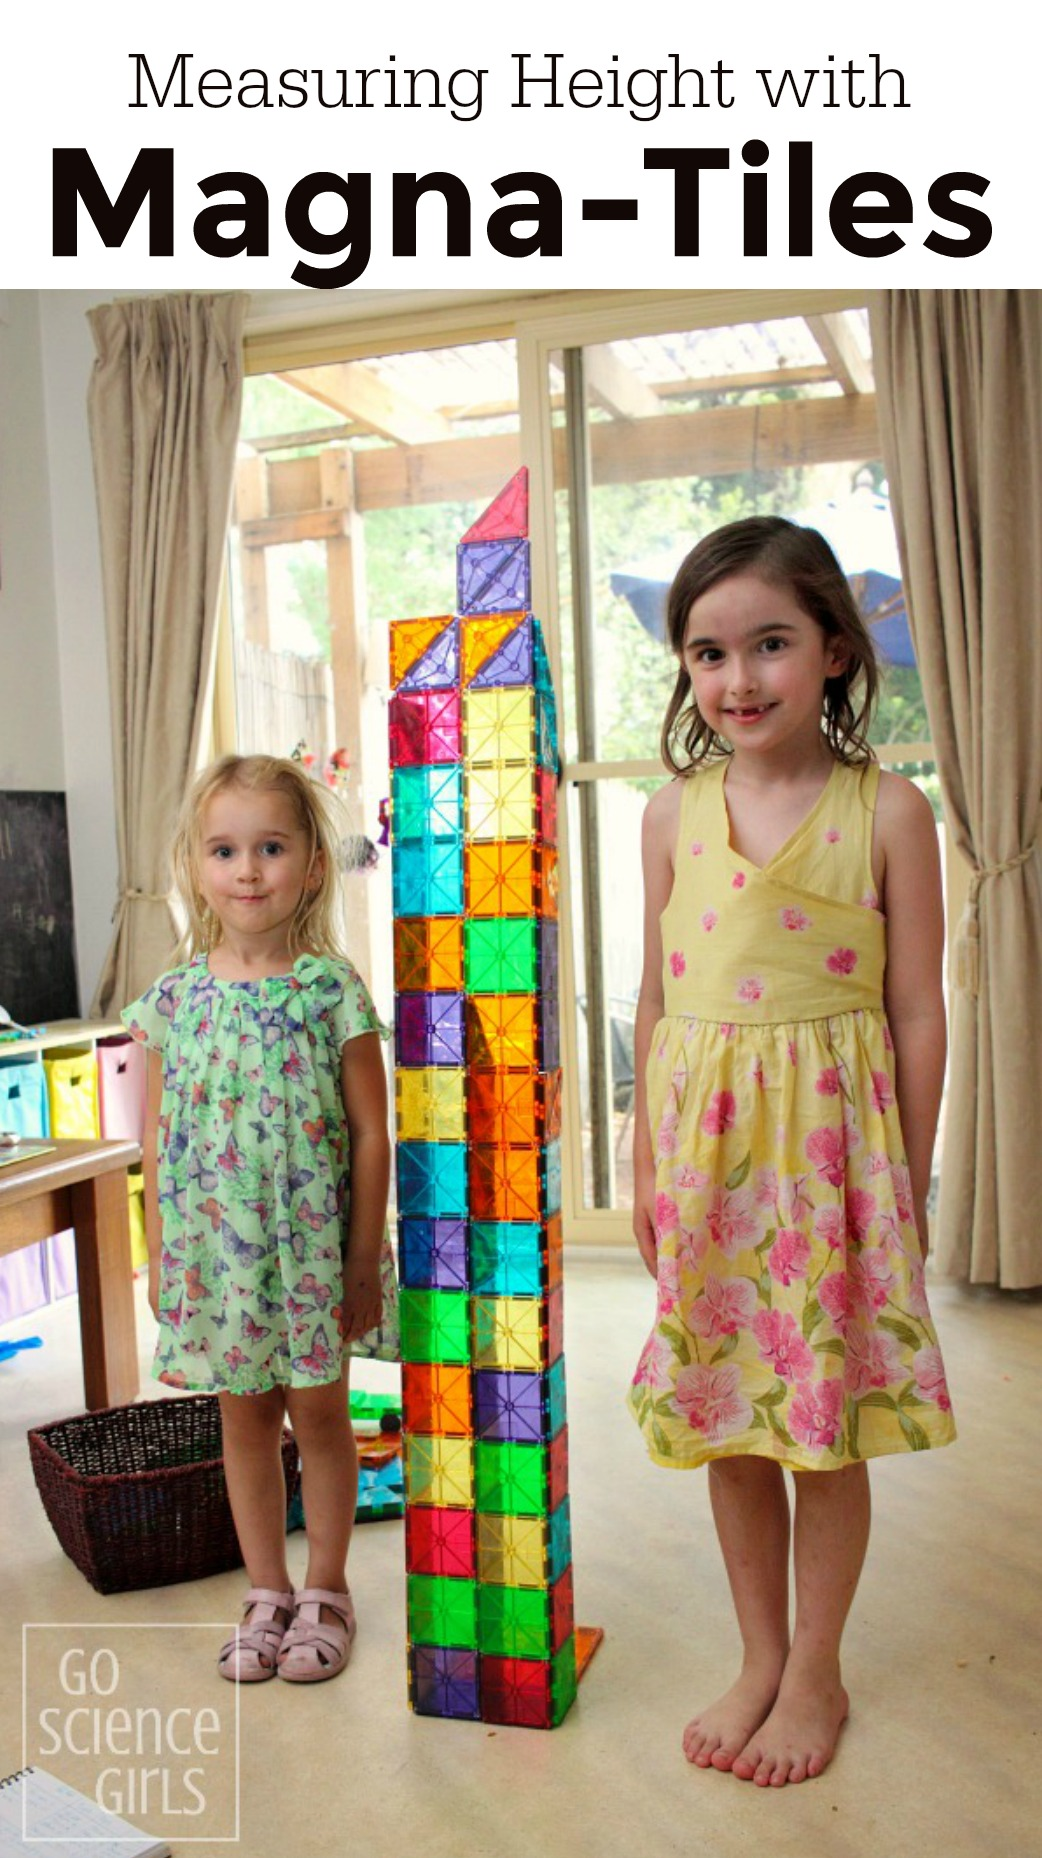 Measuring the height of kids with a Magna-Tiles tower is a fun way to practise math at home.